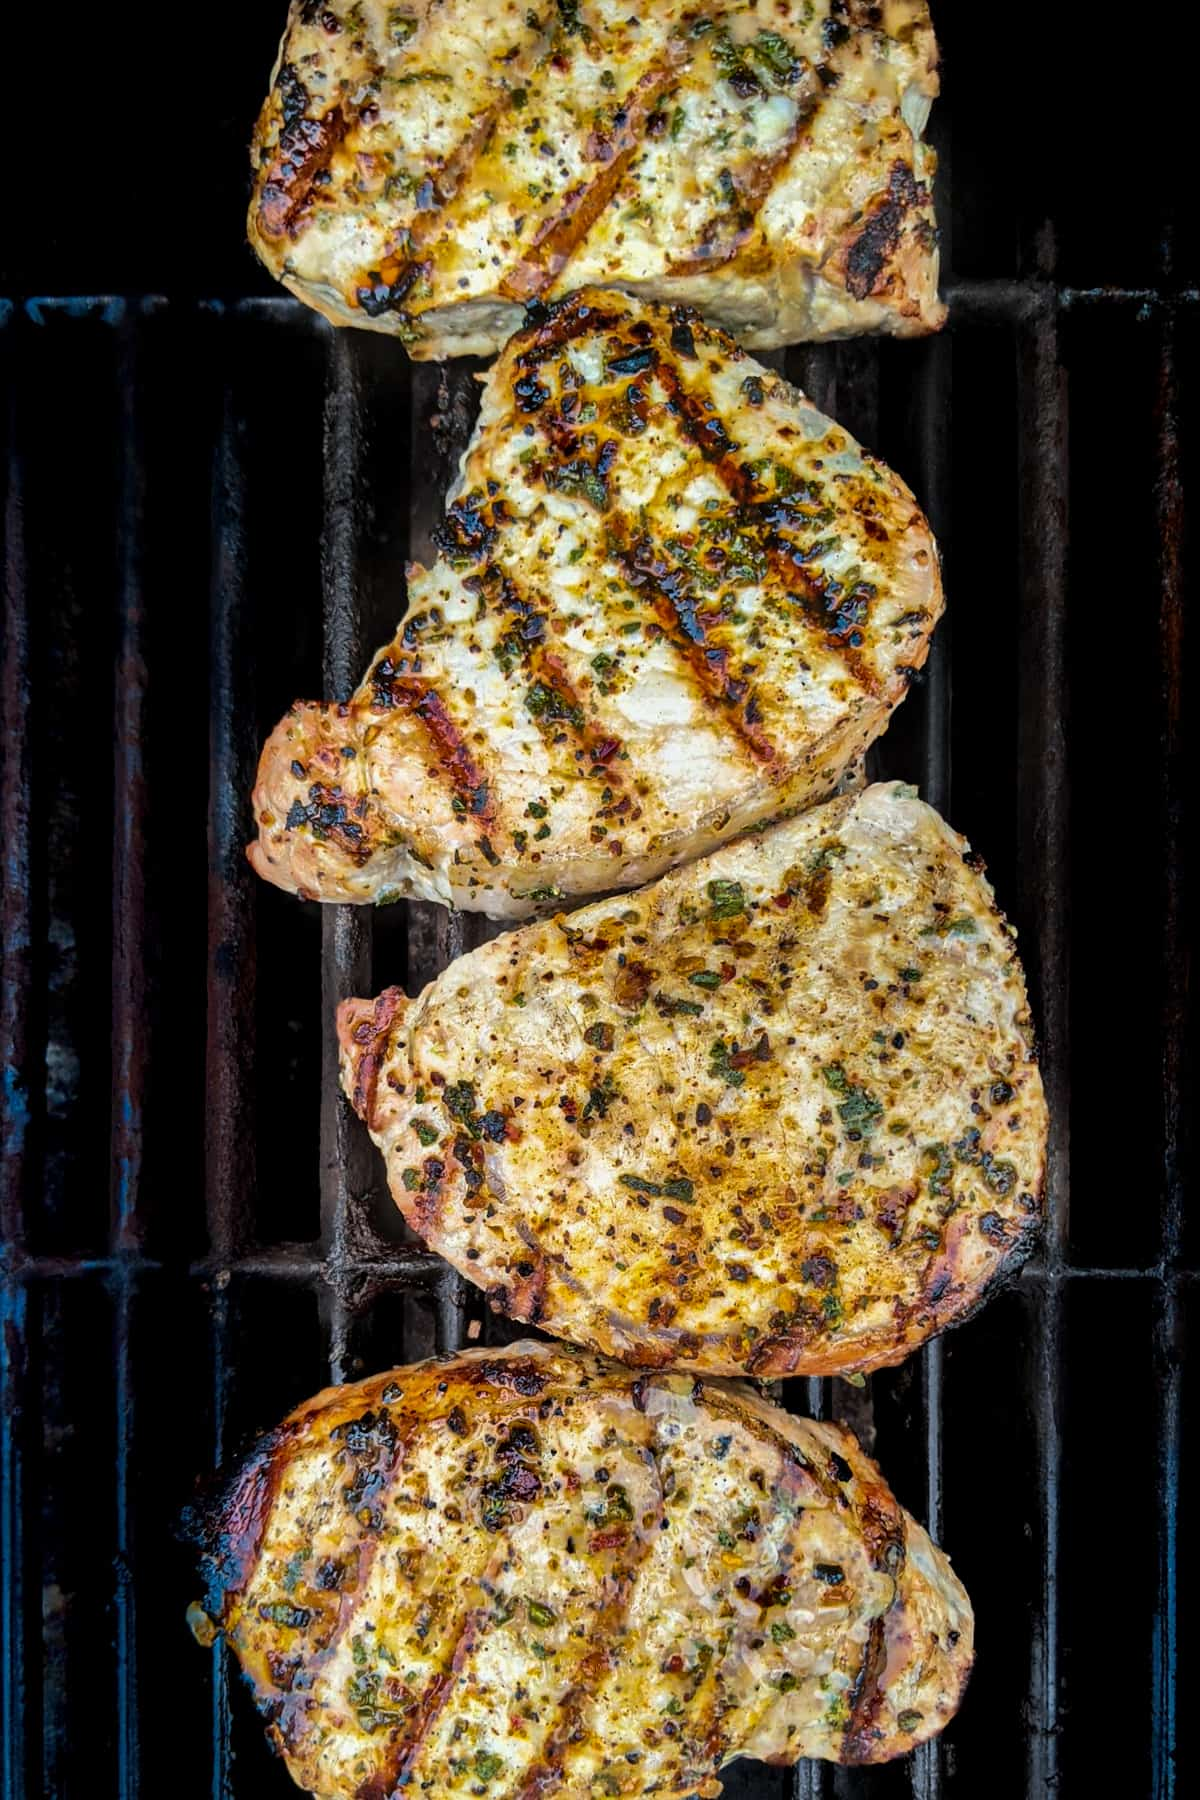 grilled pork chops on a grill